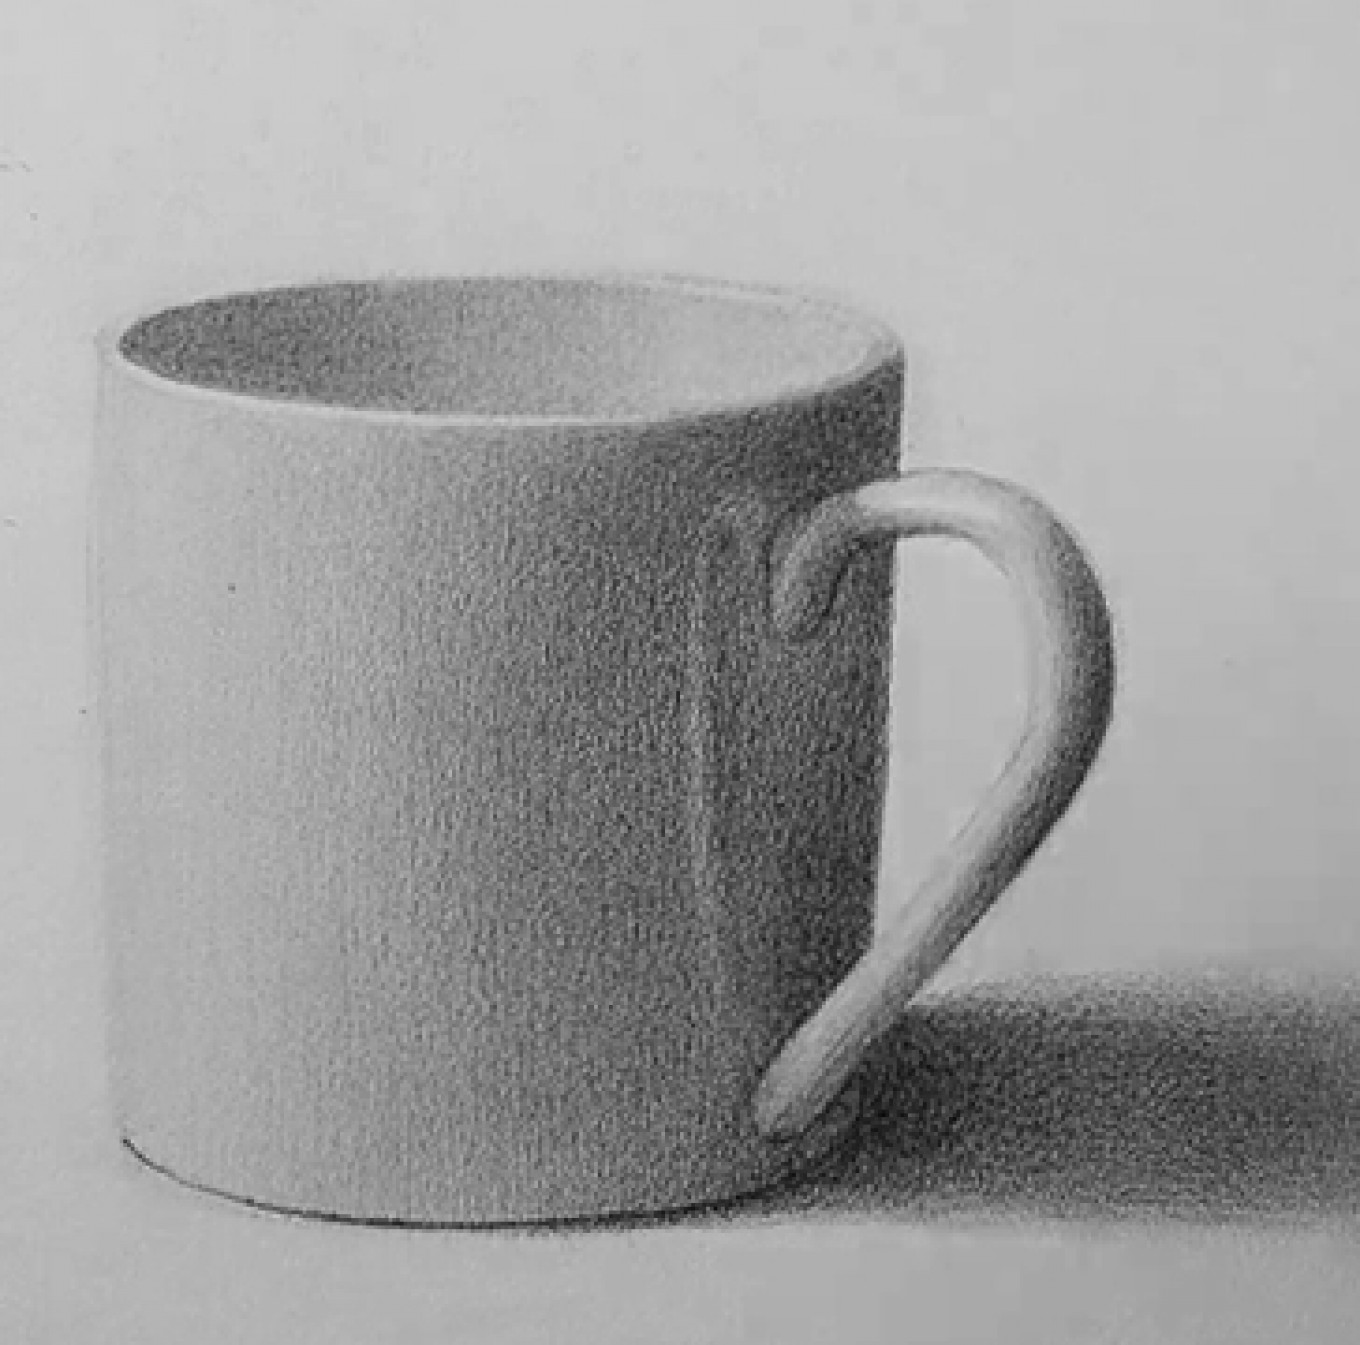 Basic drawing techniques to draw a still life